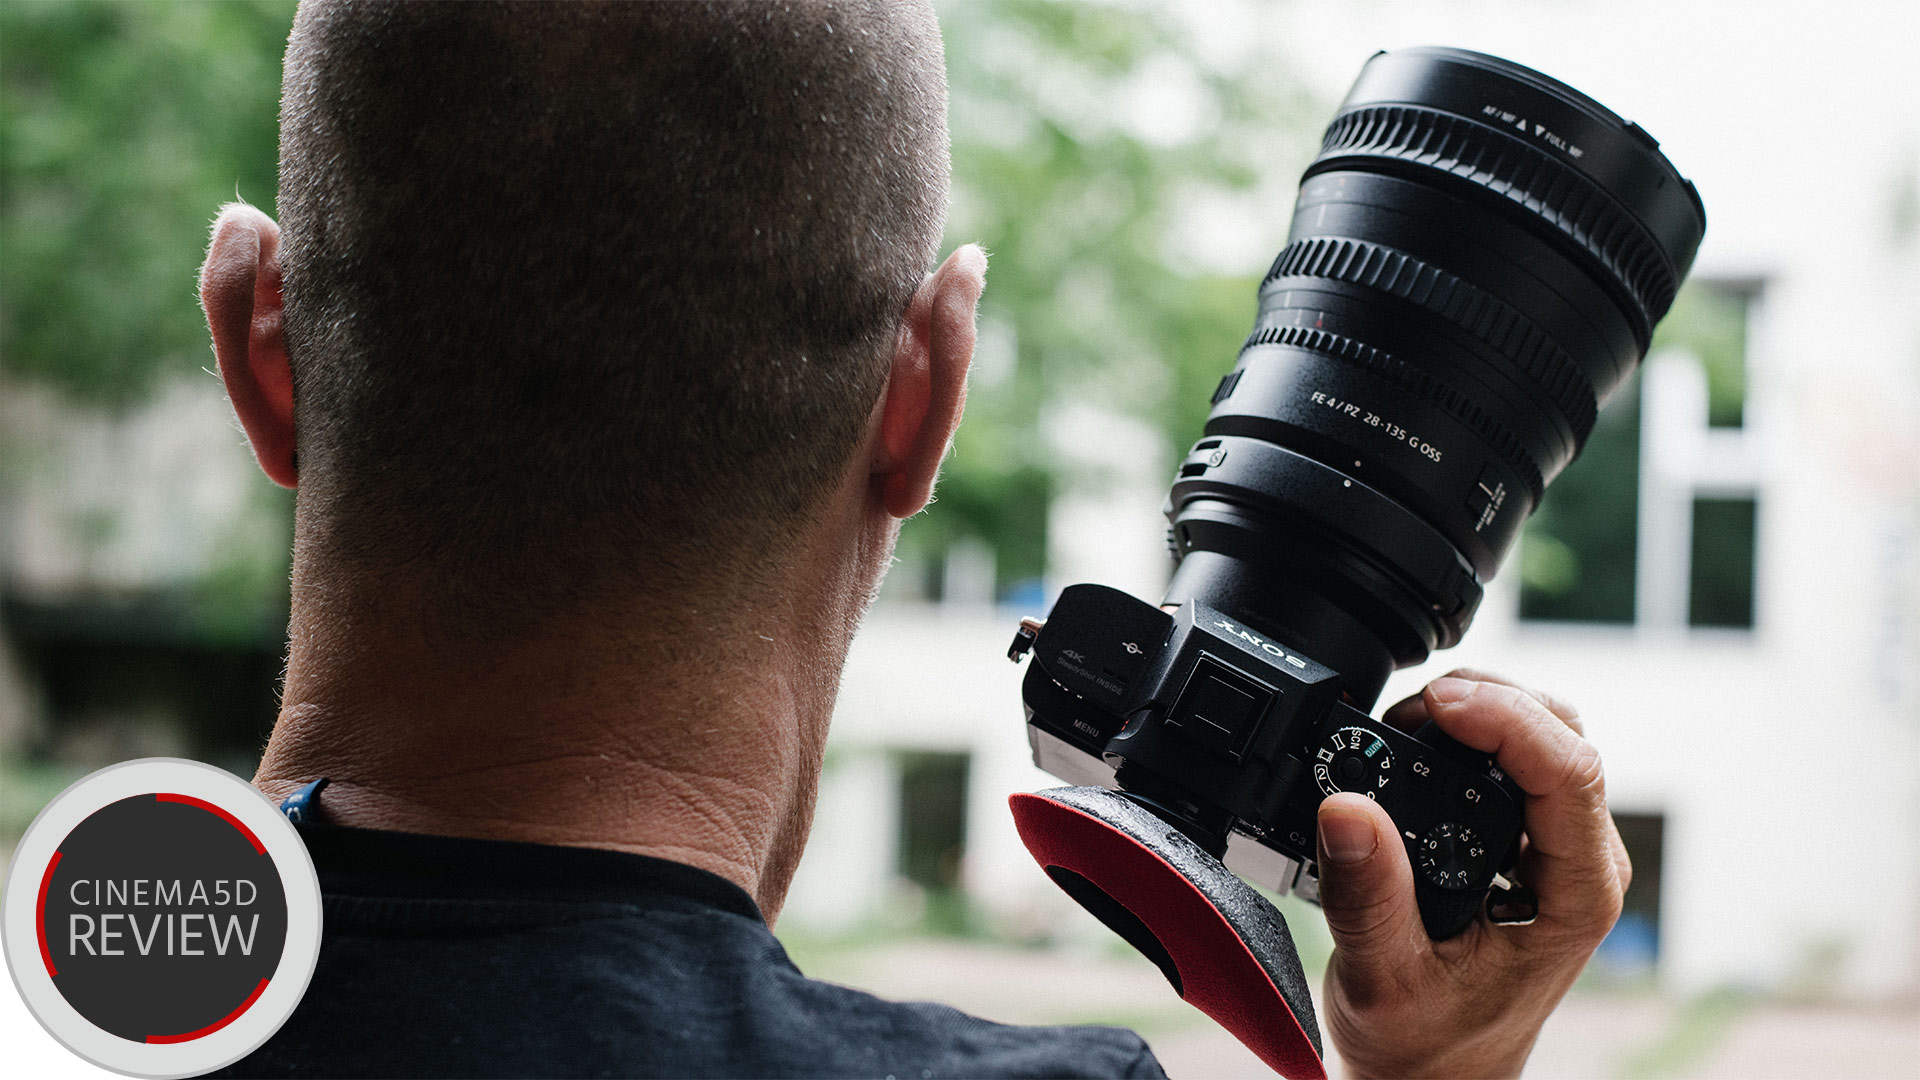 Is the Canon C300 Mark II Still Competitive? A Look at the